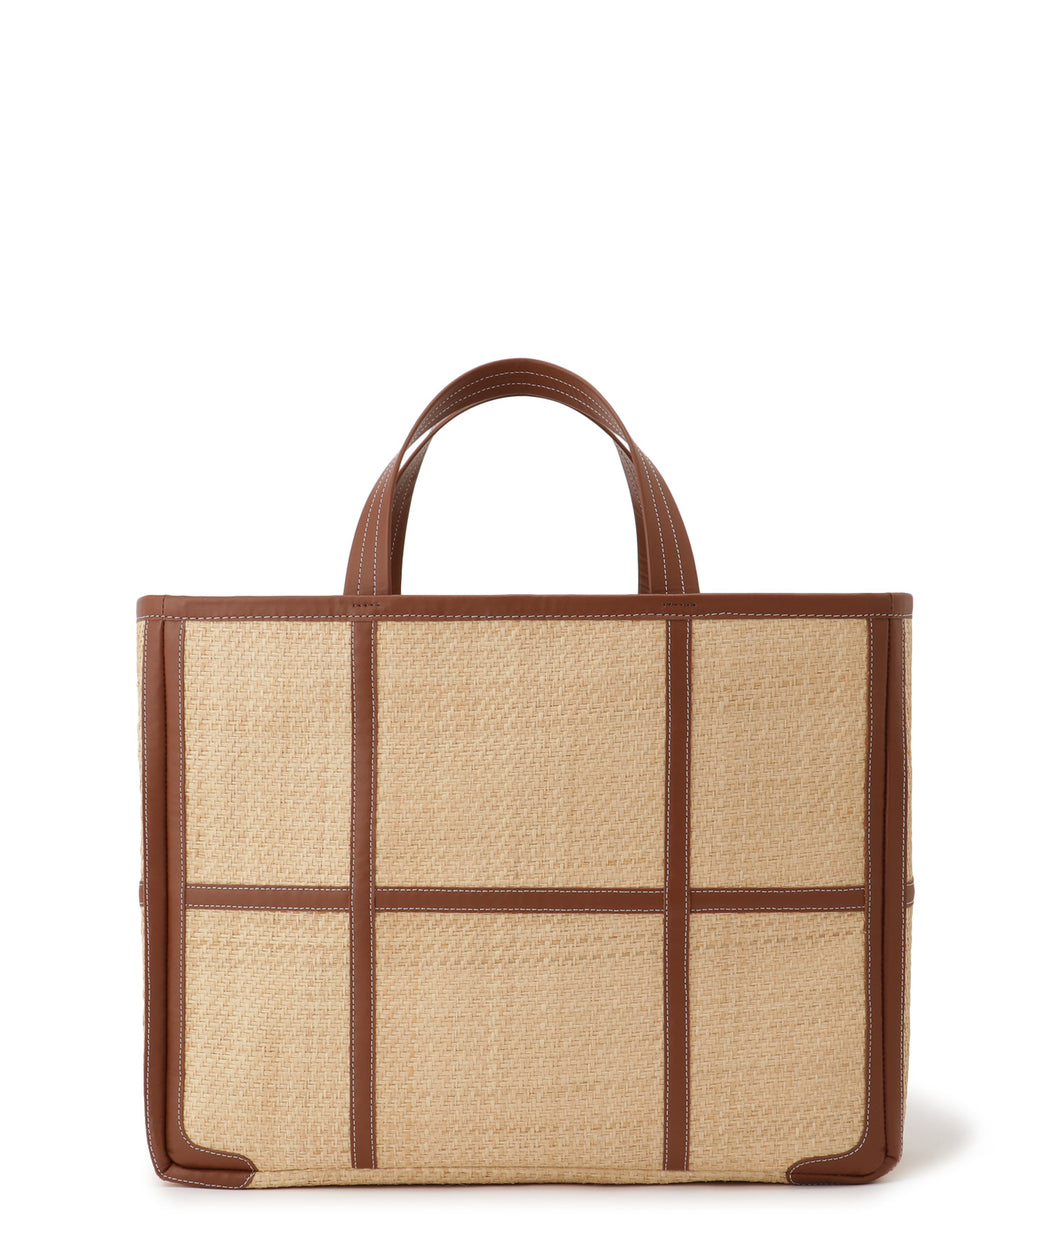 Wide leather-trimmed tote bag